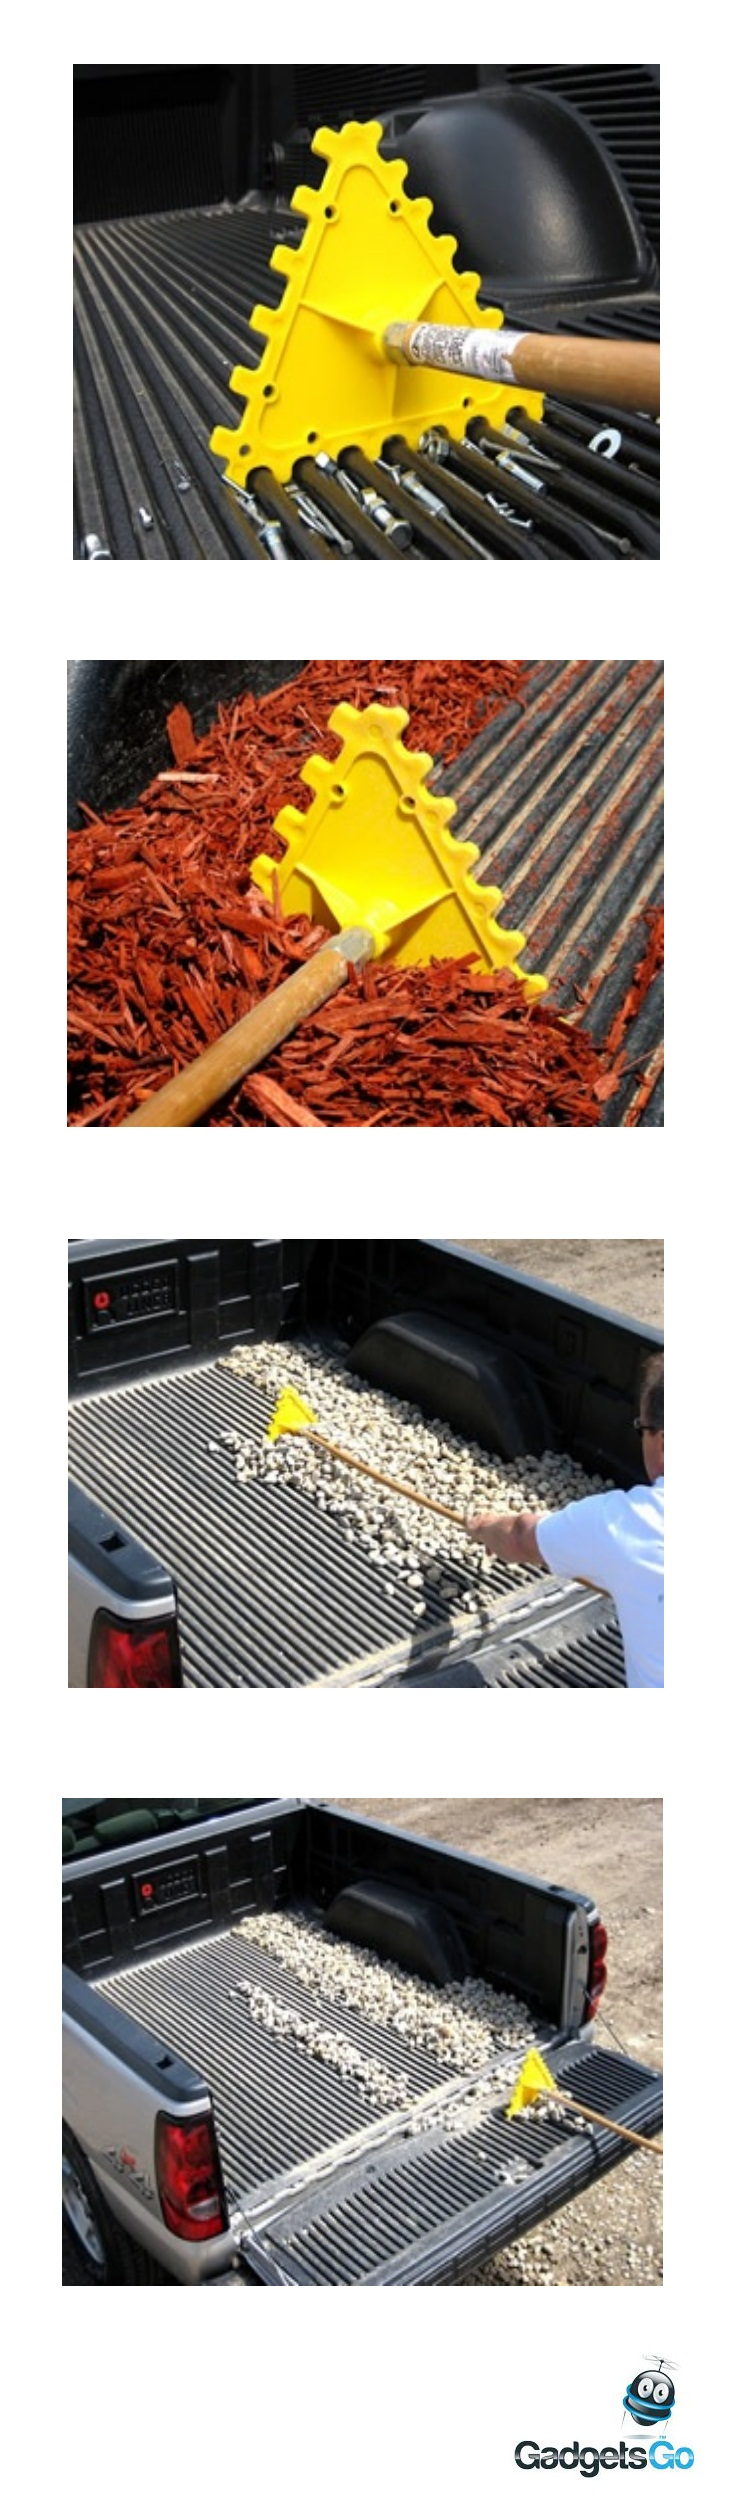 How to clean your bed - Do You Know How To Clean Your Pickup Truck Bed In The Easiest Way Possible